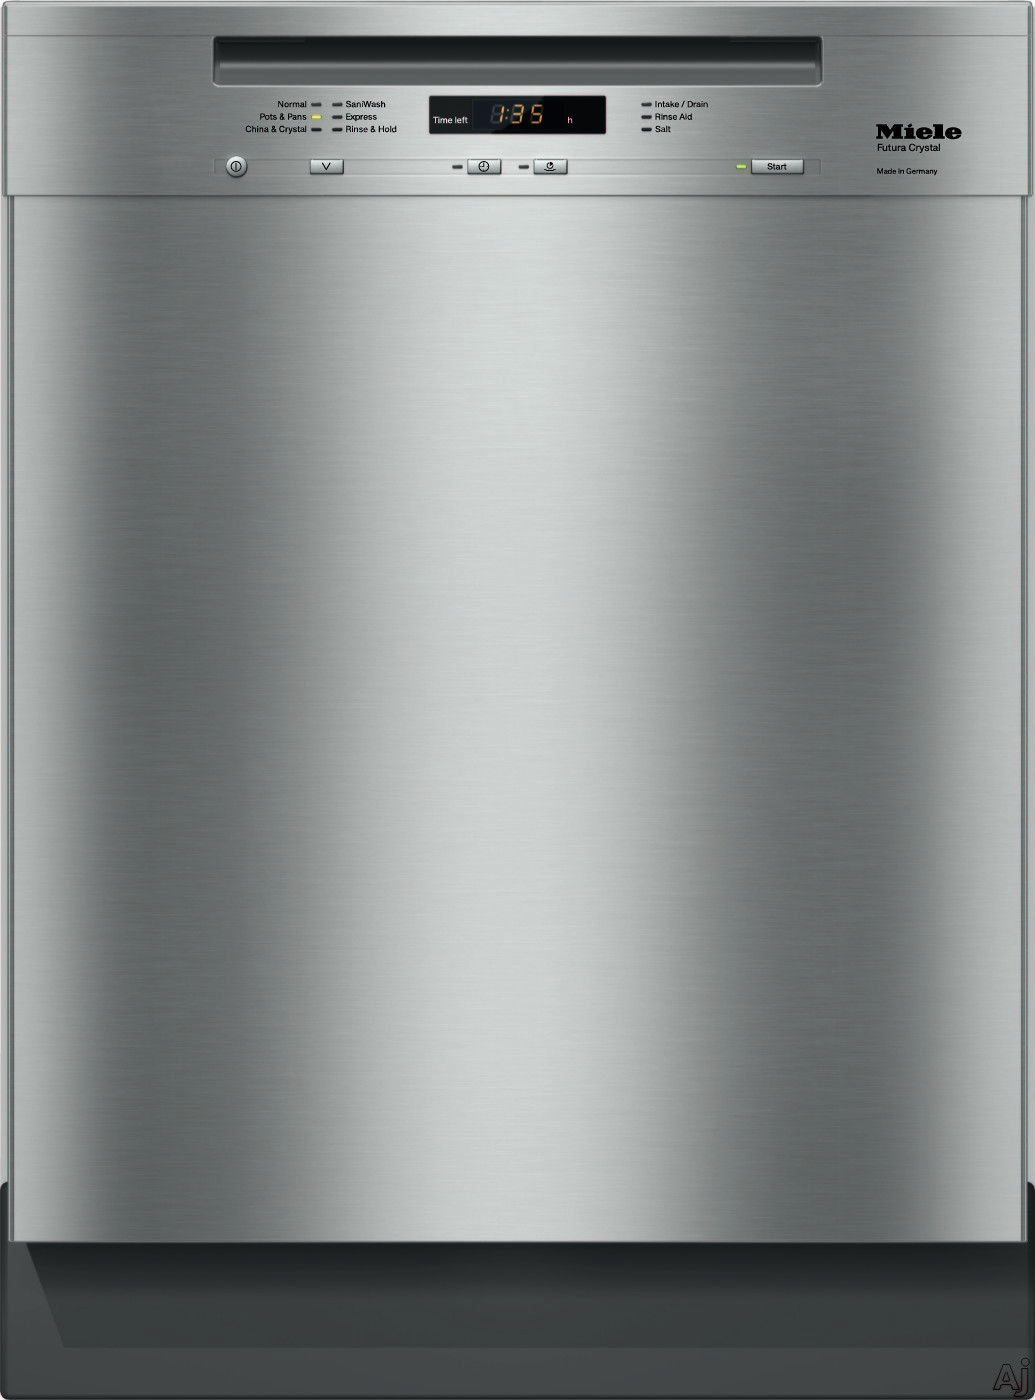 Miele G6105scu Full Console Dishwasher With 6 Wash Cycles